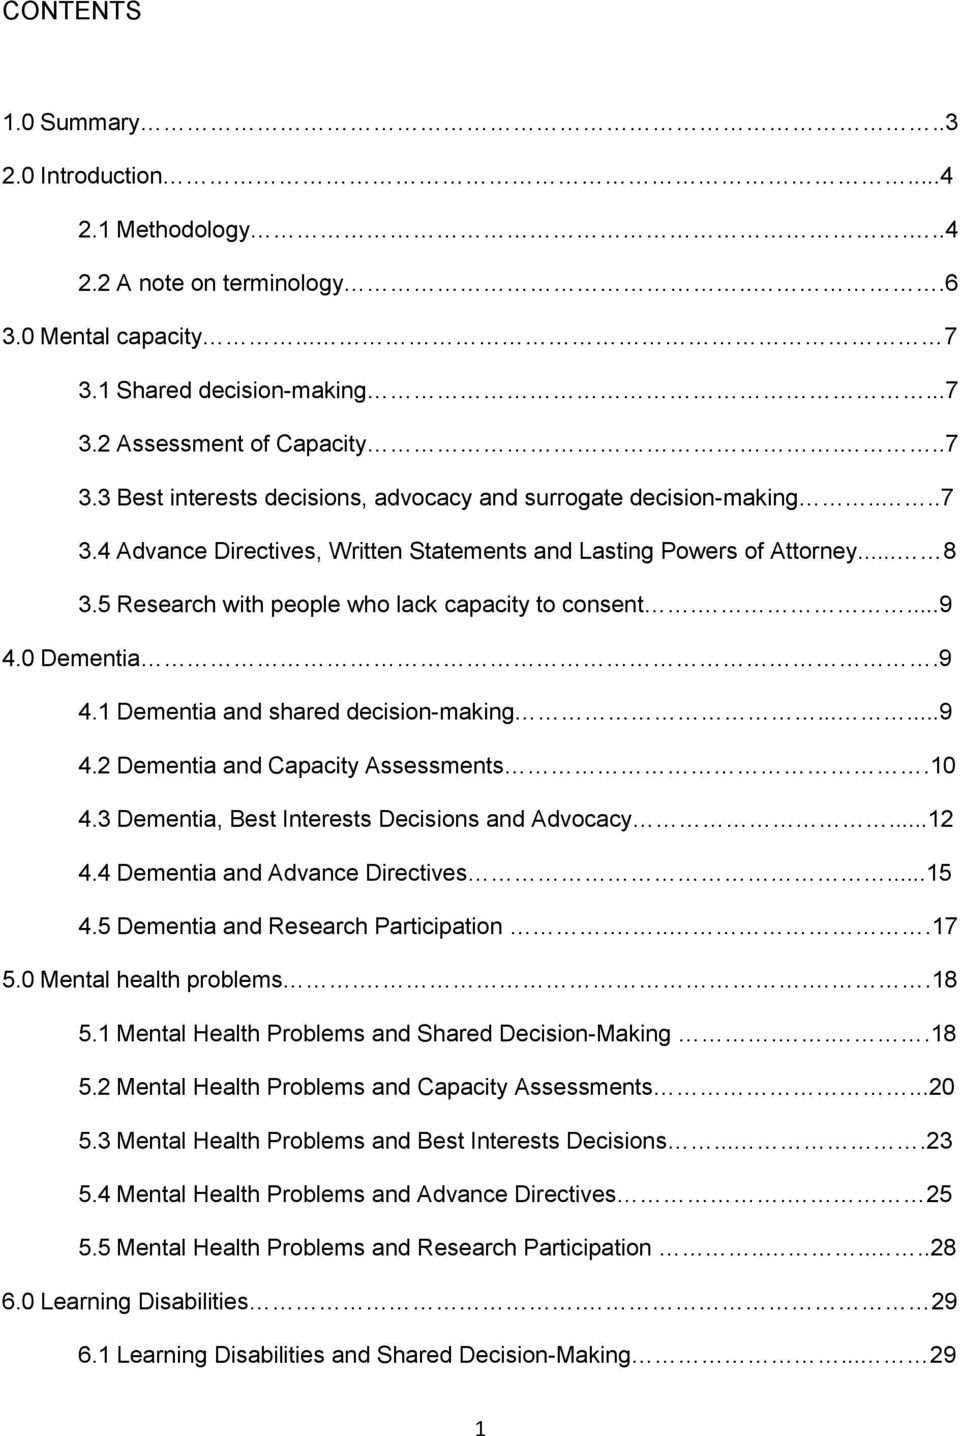 .....9 4.2 Dementia and Capacity Assessments.10 4.3 Dementia, Best Interests Decisions and Advocacy...12 4.4 Dementia and Advance Directives...15 4.5 Dementia and Research Participation....17 5.